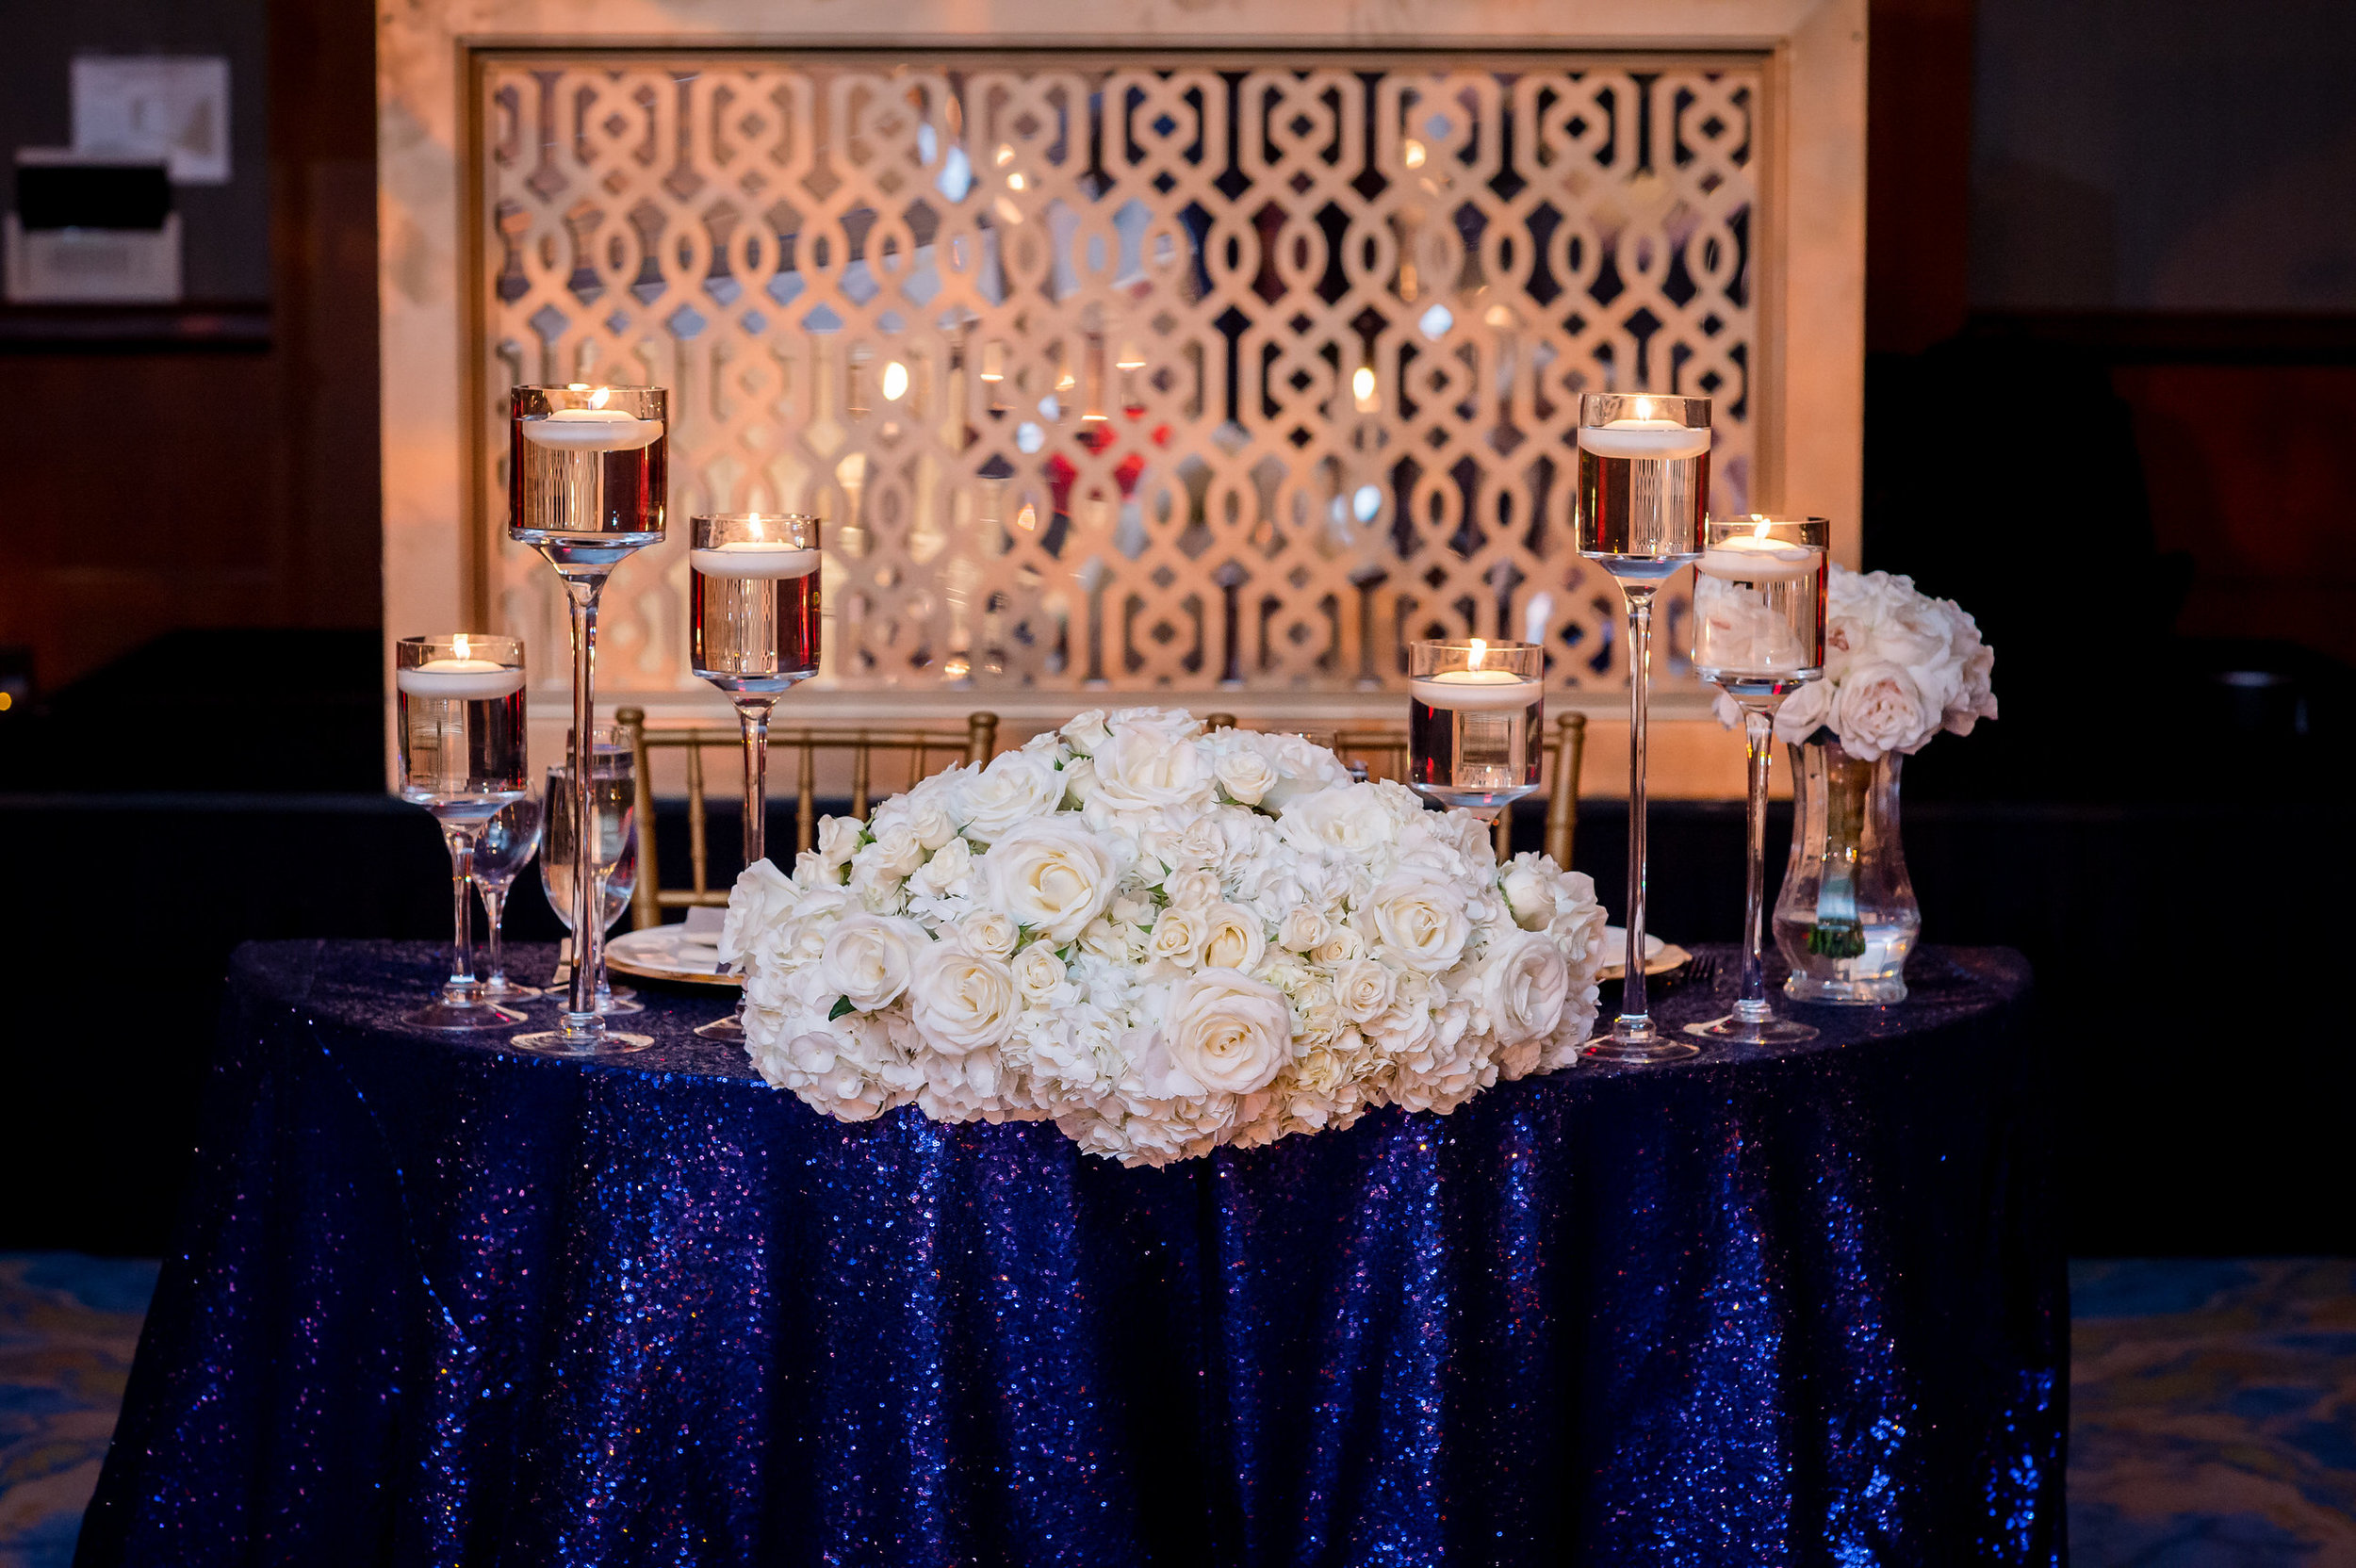 NAVY WHITE FLORALS BAR DJ BOOTH.jpg